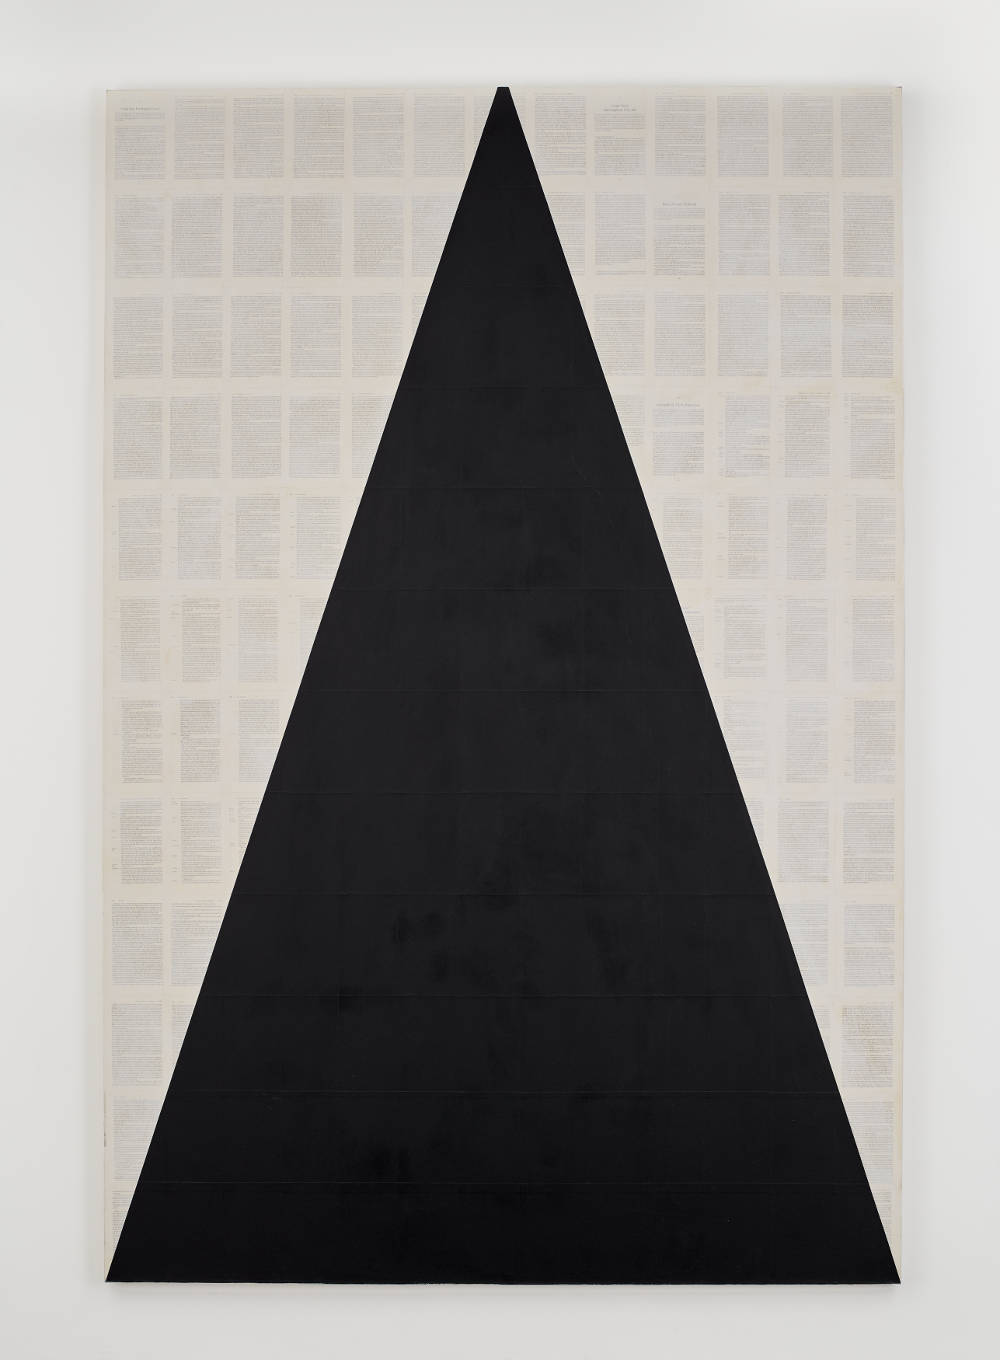 TIM ROLLINS and K.O.S., I see the promised land (after the Rev. Dr. M. L. King, Jr.), 2008. Matte acrylic and book pages on canvas 108 x 72 inches 274.3 x 182.9 cm. Courtesy Studio K.O.S., Lehmann Maupin, New York, Hong Kong, and Seoul. Photo: Matthew Herrmann